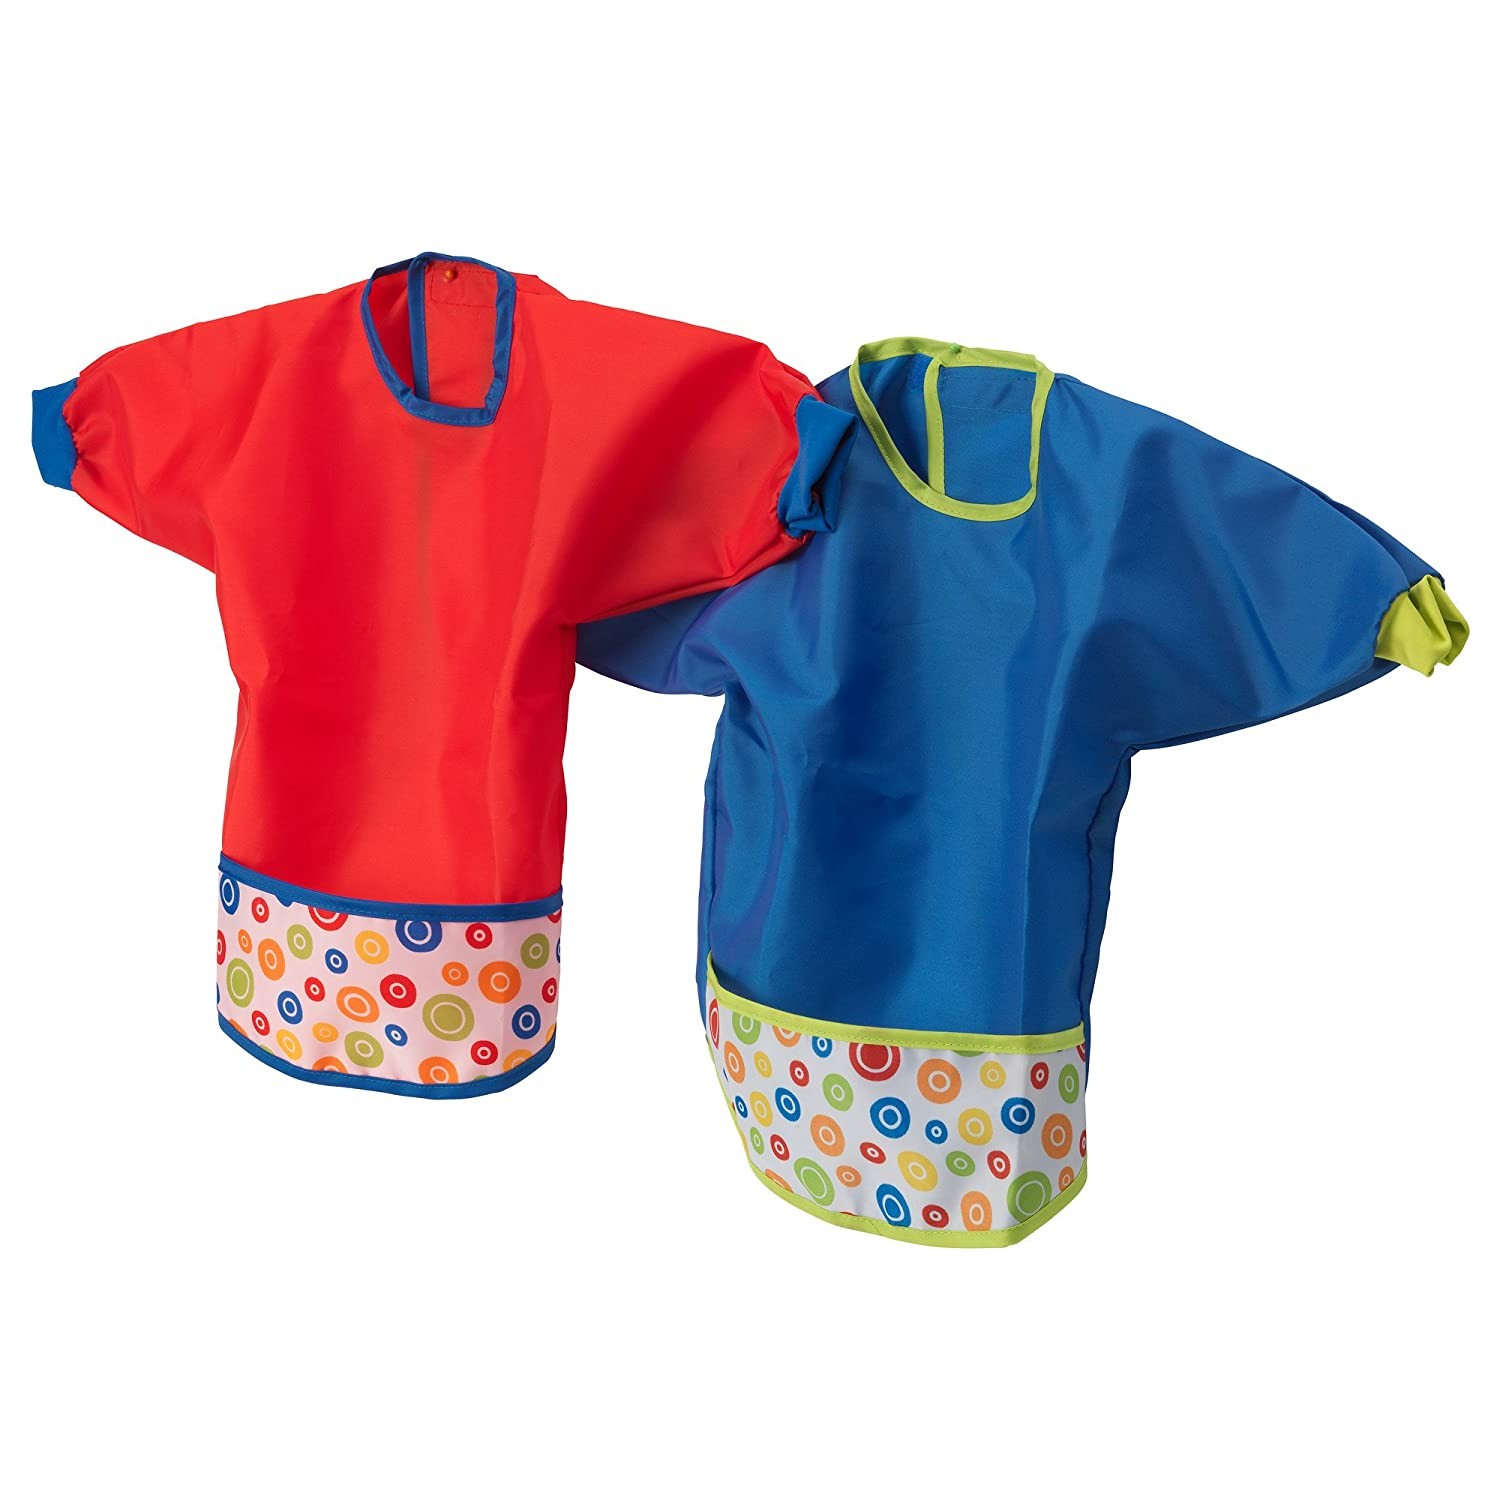 KLADD PRICKAR Bib, assorted sets of red and blue - pack of 2 IKEA